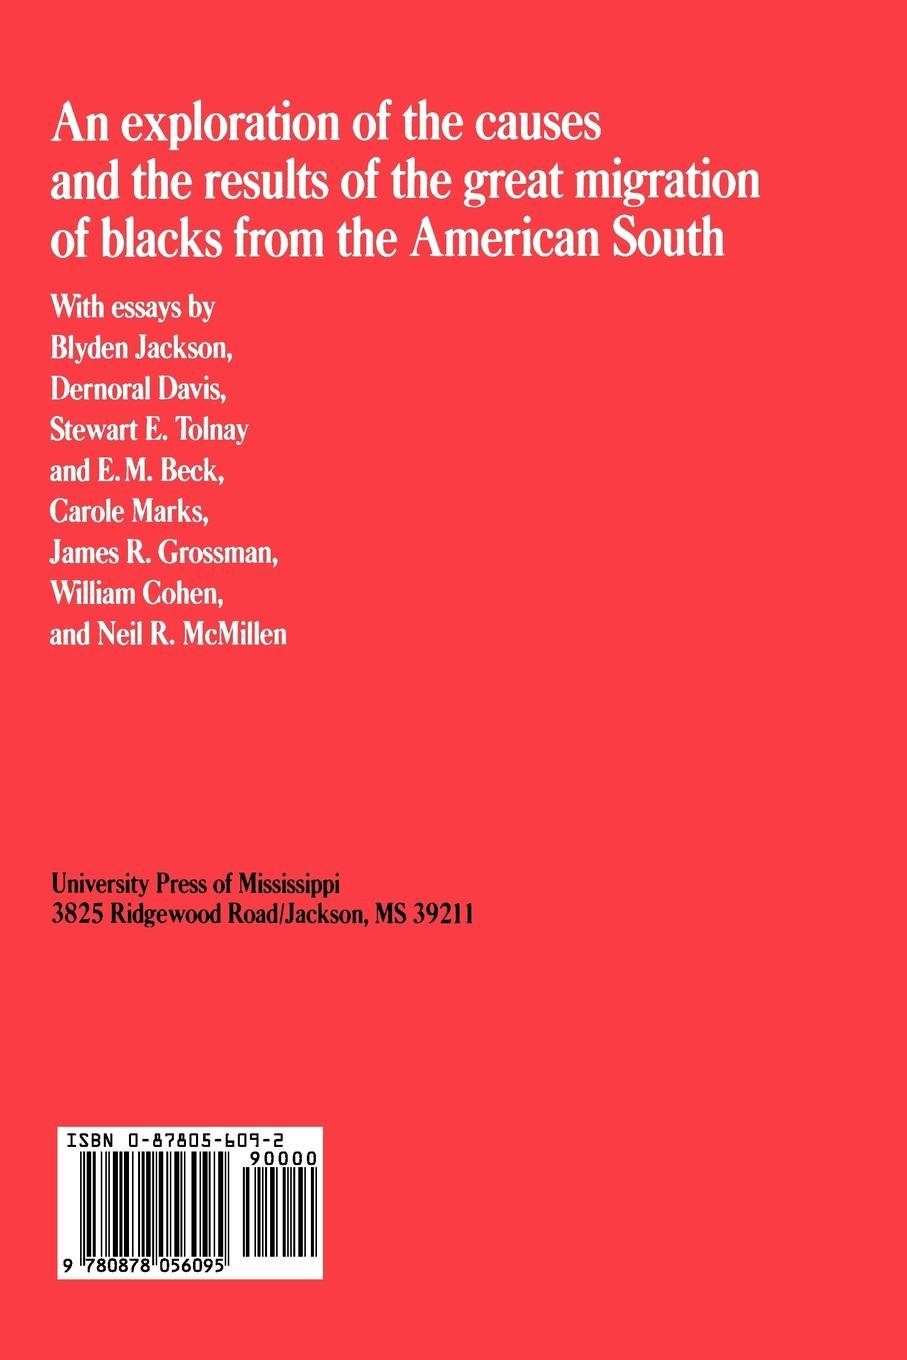 Black Exodus: The Great Migration from the American South: Alferdteen  Harrison: 9780878056095: Amazon.com: Books